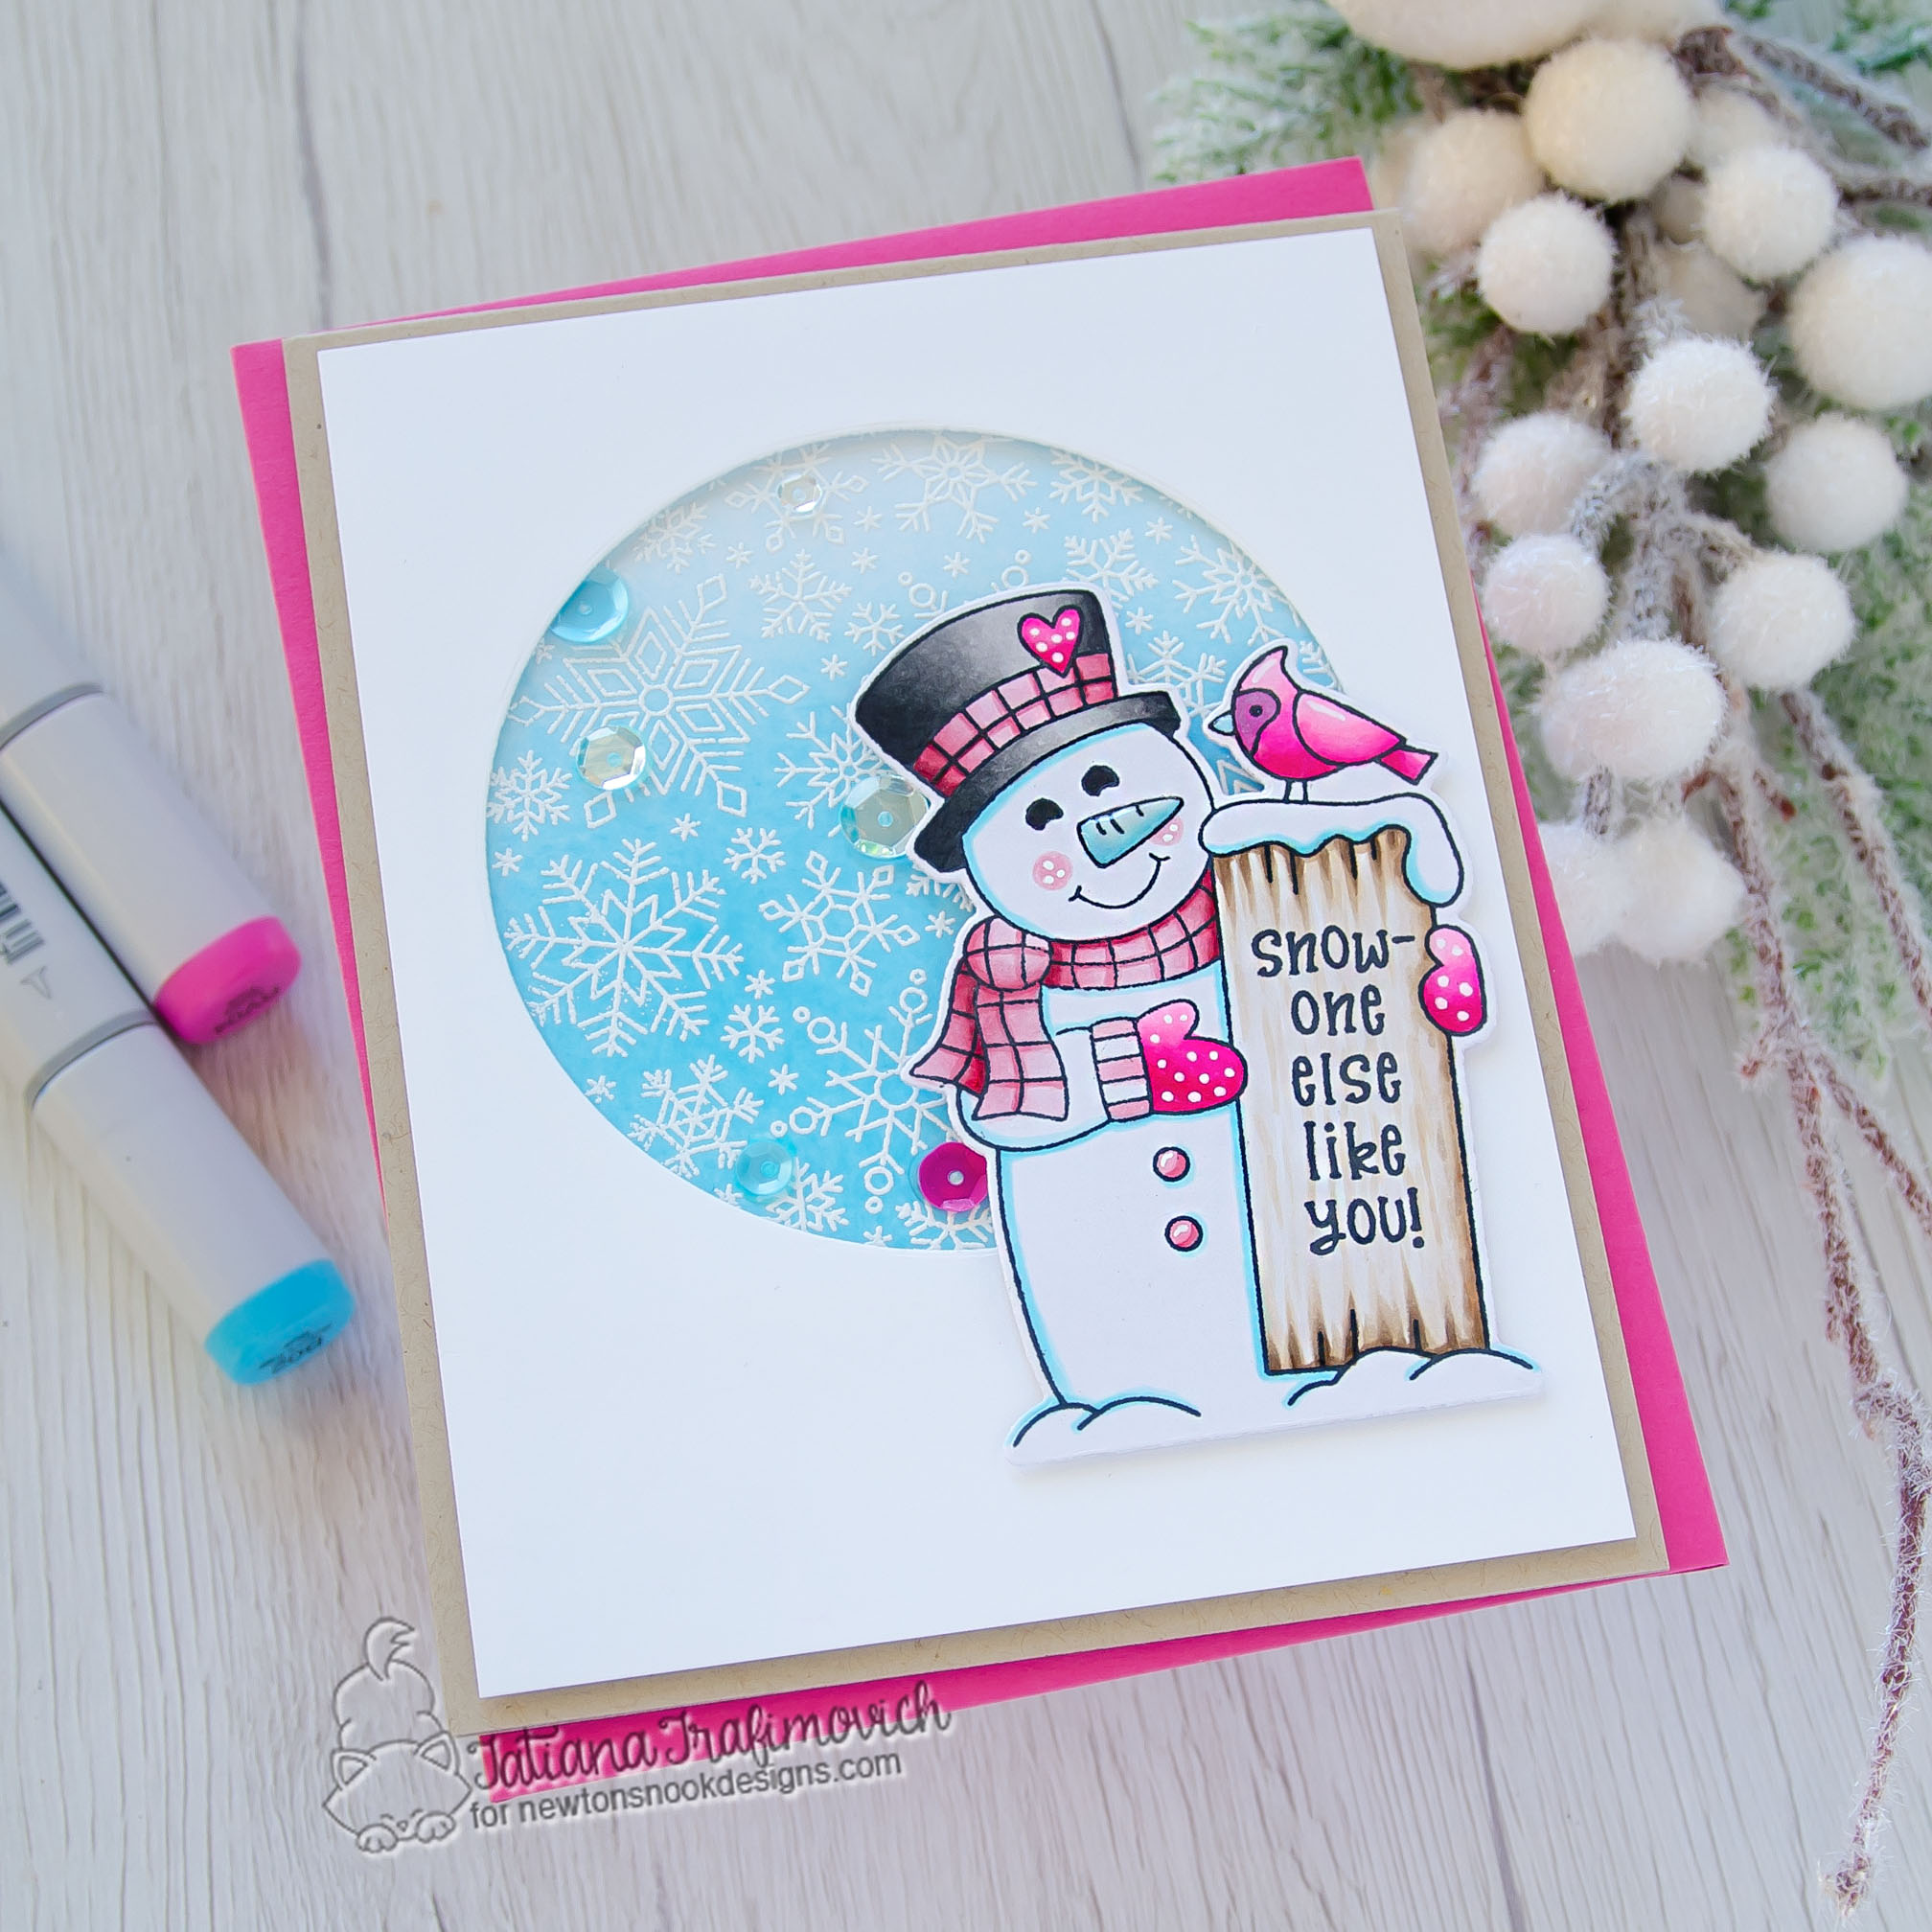 Snow-one Else Like You #handmade card by Tatiana Trafimovich #tatianacraftandart - Snowman Greetings stamp set by Newton's Nook Designs #newtonsnook